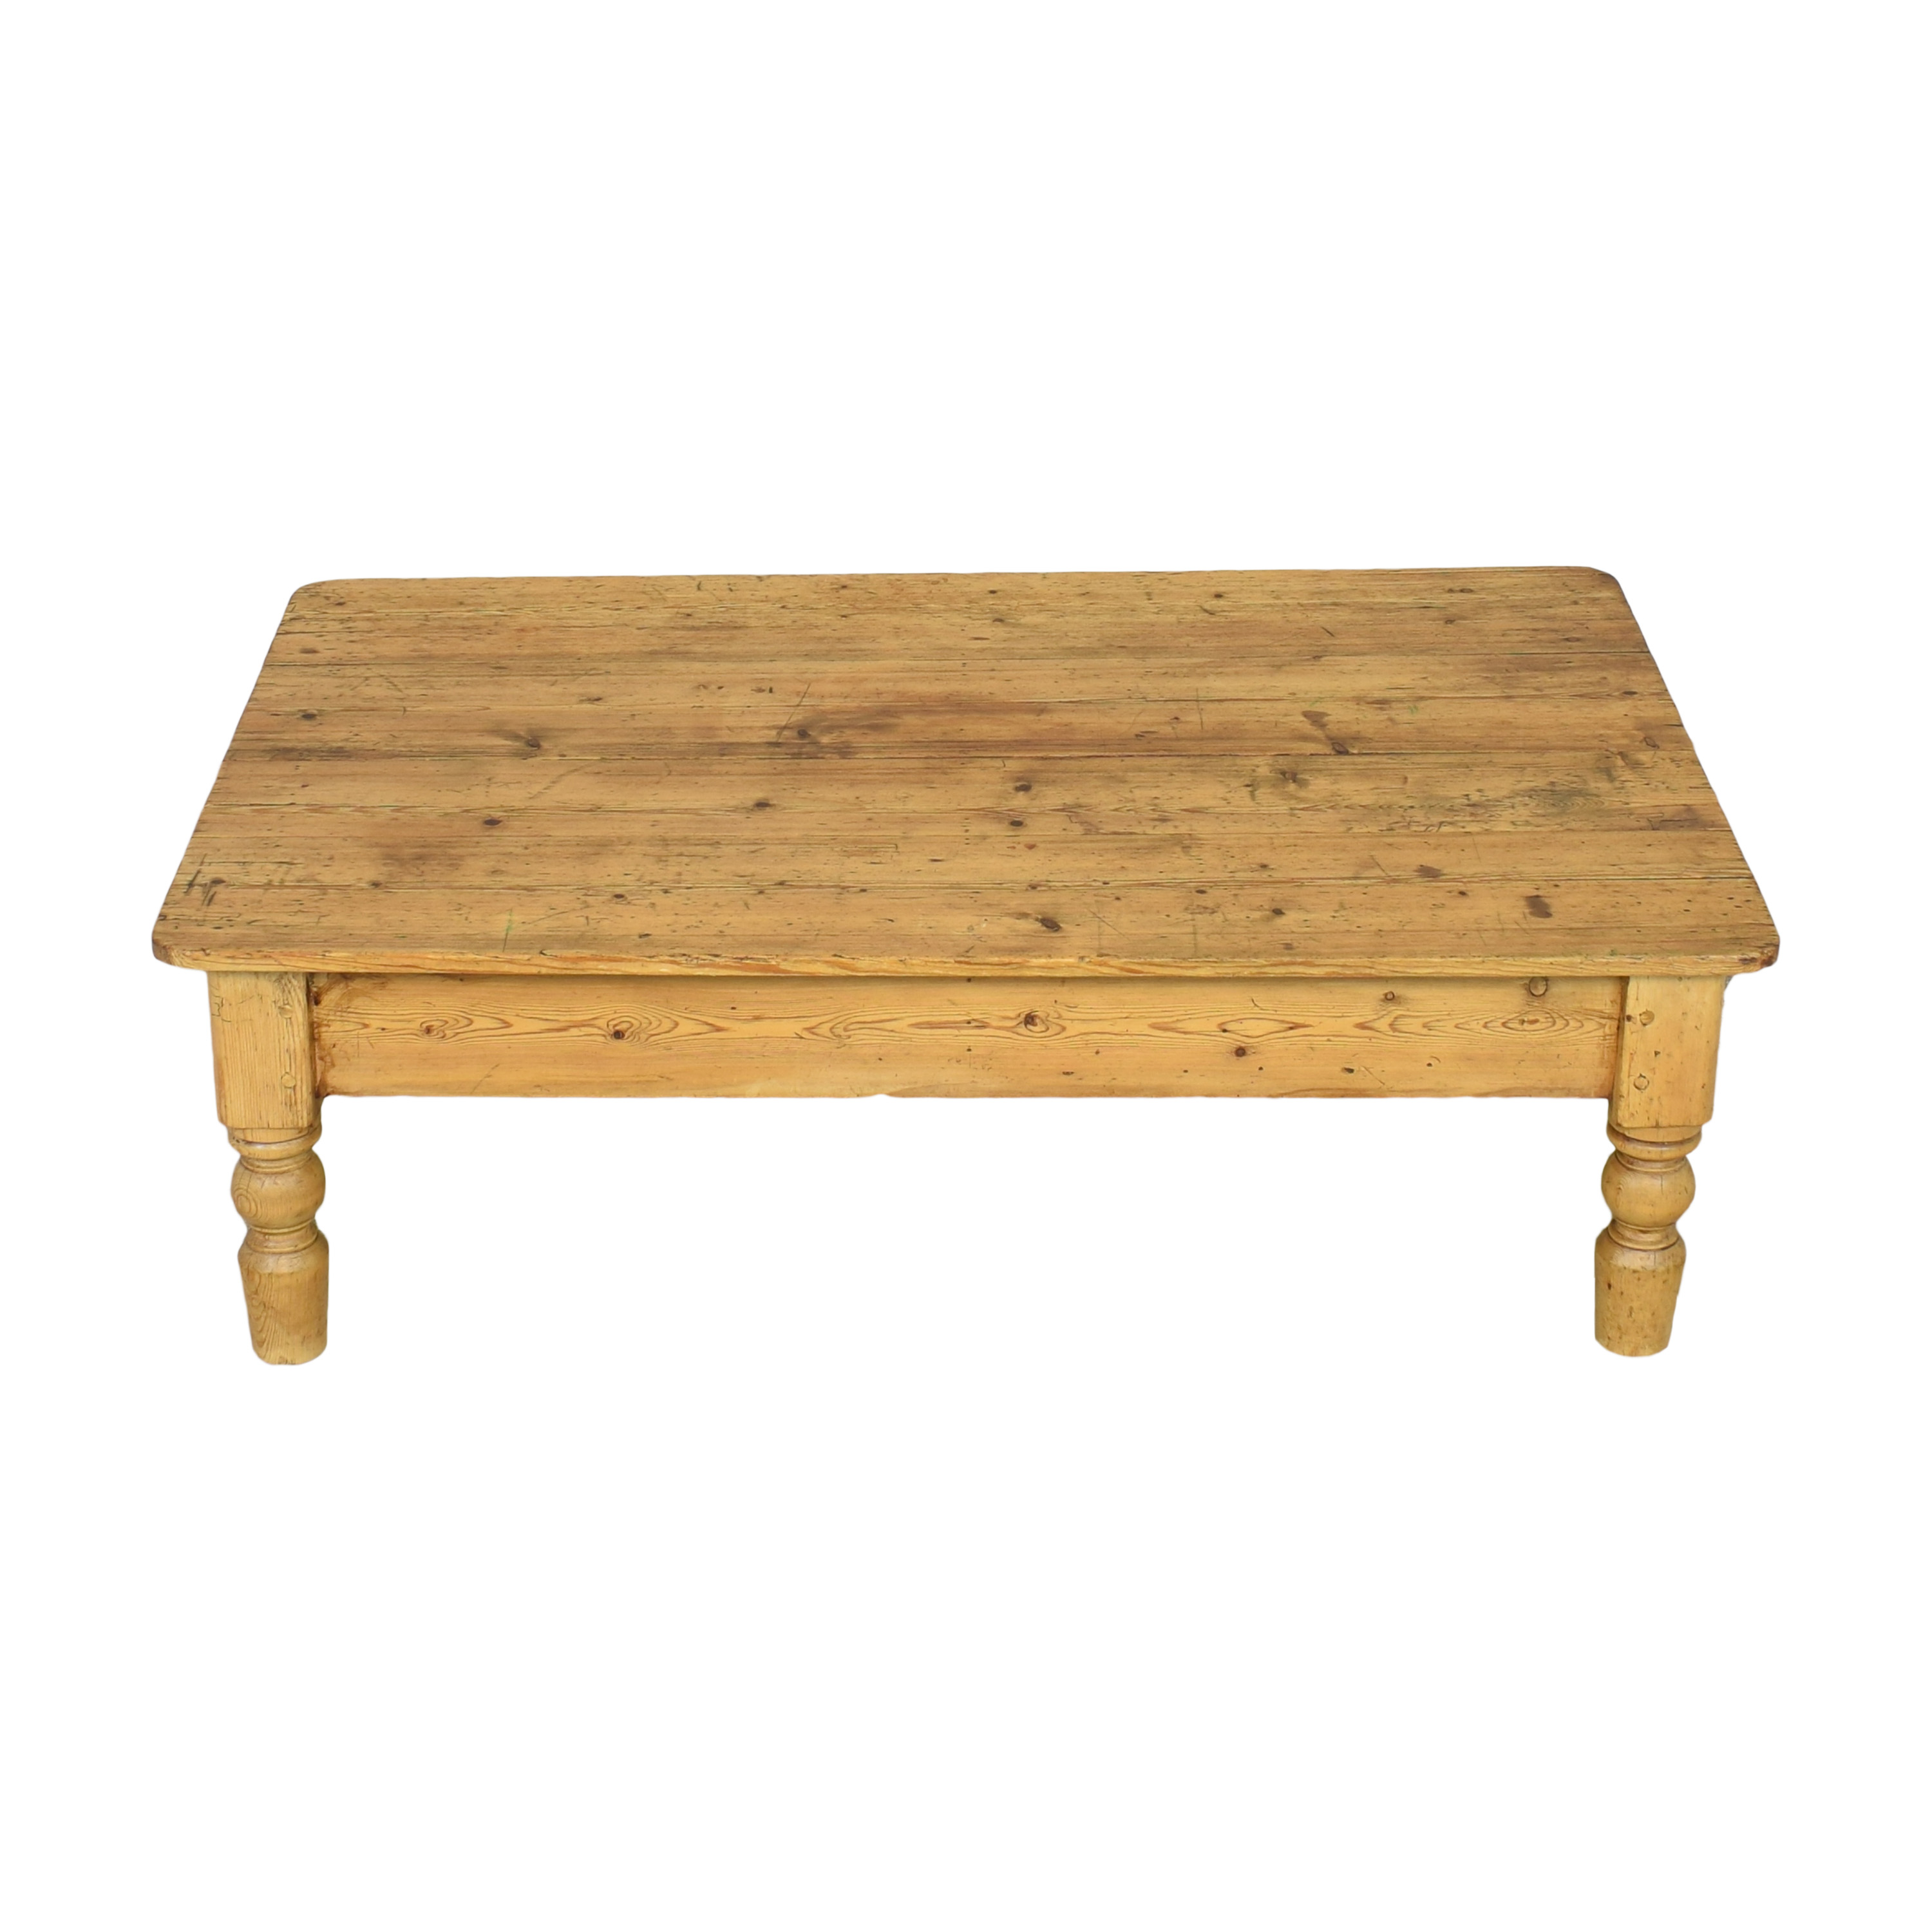 The Pine Mine Coffee Table Tables